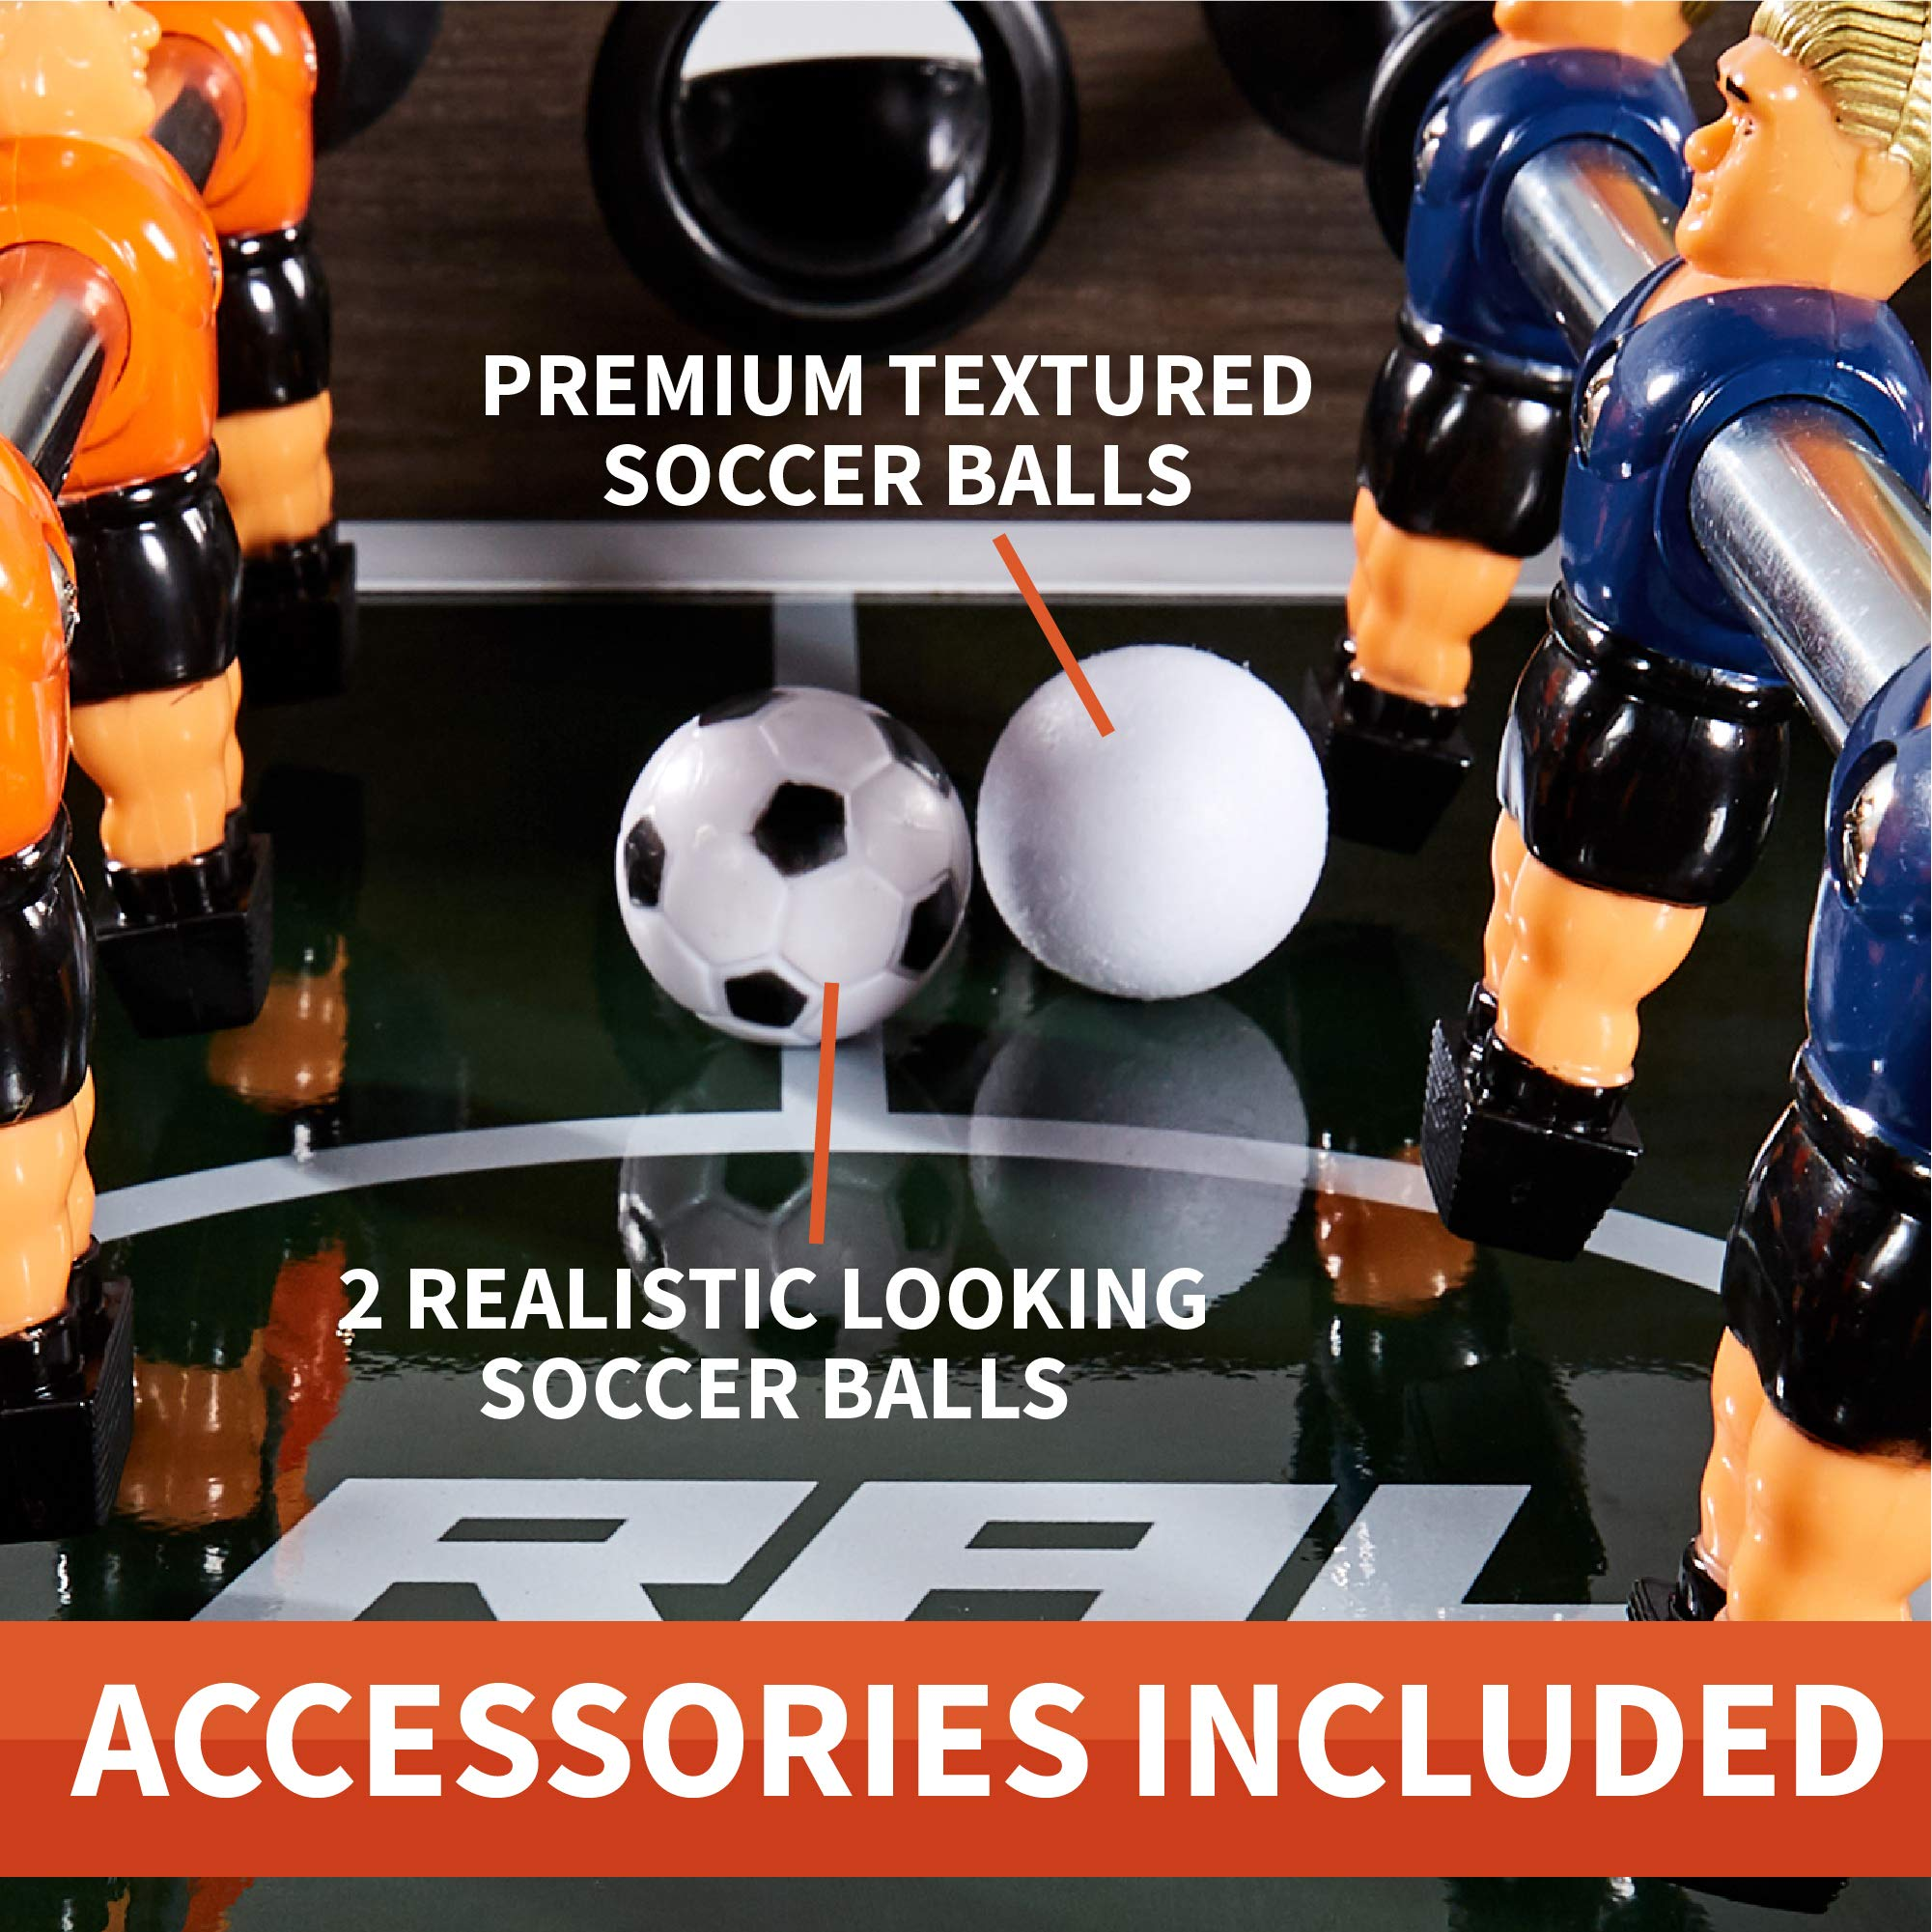 """Rally and Roar Foosball Table Game – 56"""" Standard Size Fun, Multi Person Table Soccer Adults, Kids - Recreational Foosball Games Game Rooms, Arcades, Bars, Parties, Family Night by Rally and Roar (Image #6)"""